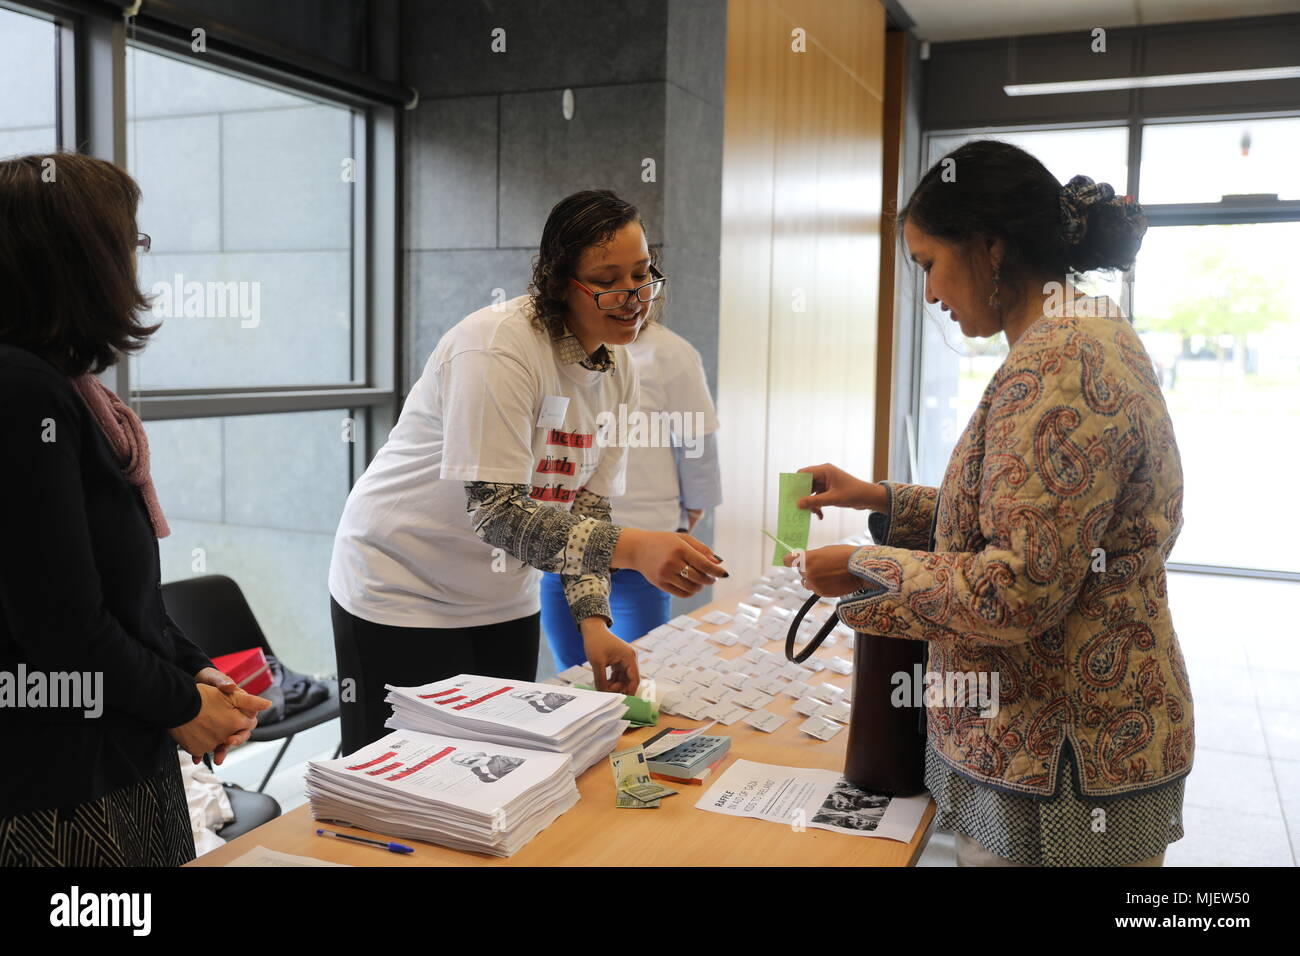 Dublin. 5th May, 2018. A delegate registers at a seminar in Maynooth, east Ireland, May 4, 2018. A two-day international seminar to mark the 200th birthday of Karl Marx opened at Maynooth University in Ireland's eastern city of Maynooth on Friday. Credit: Xinhua/Alamy Live News - Stock Image